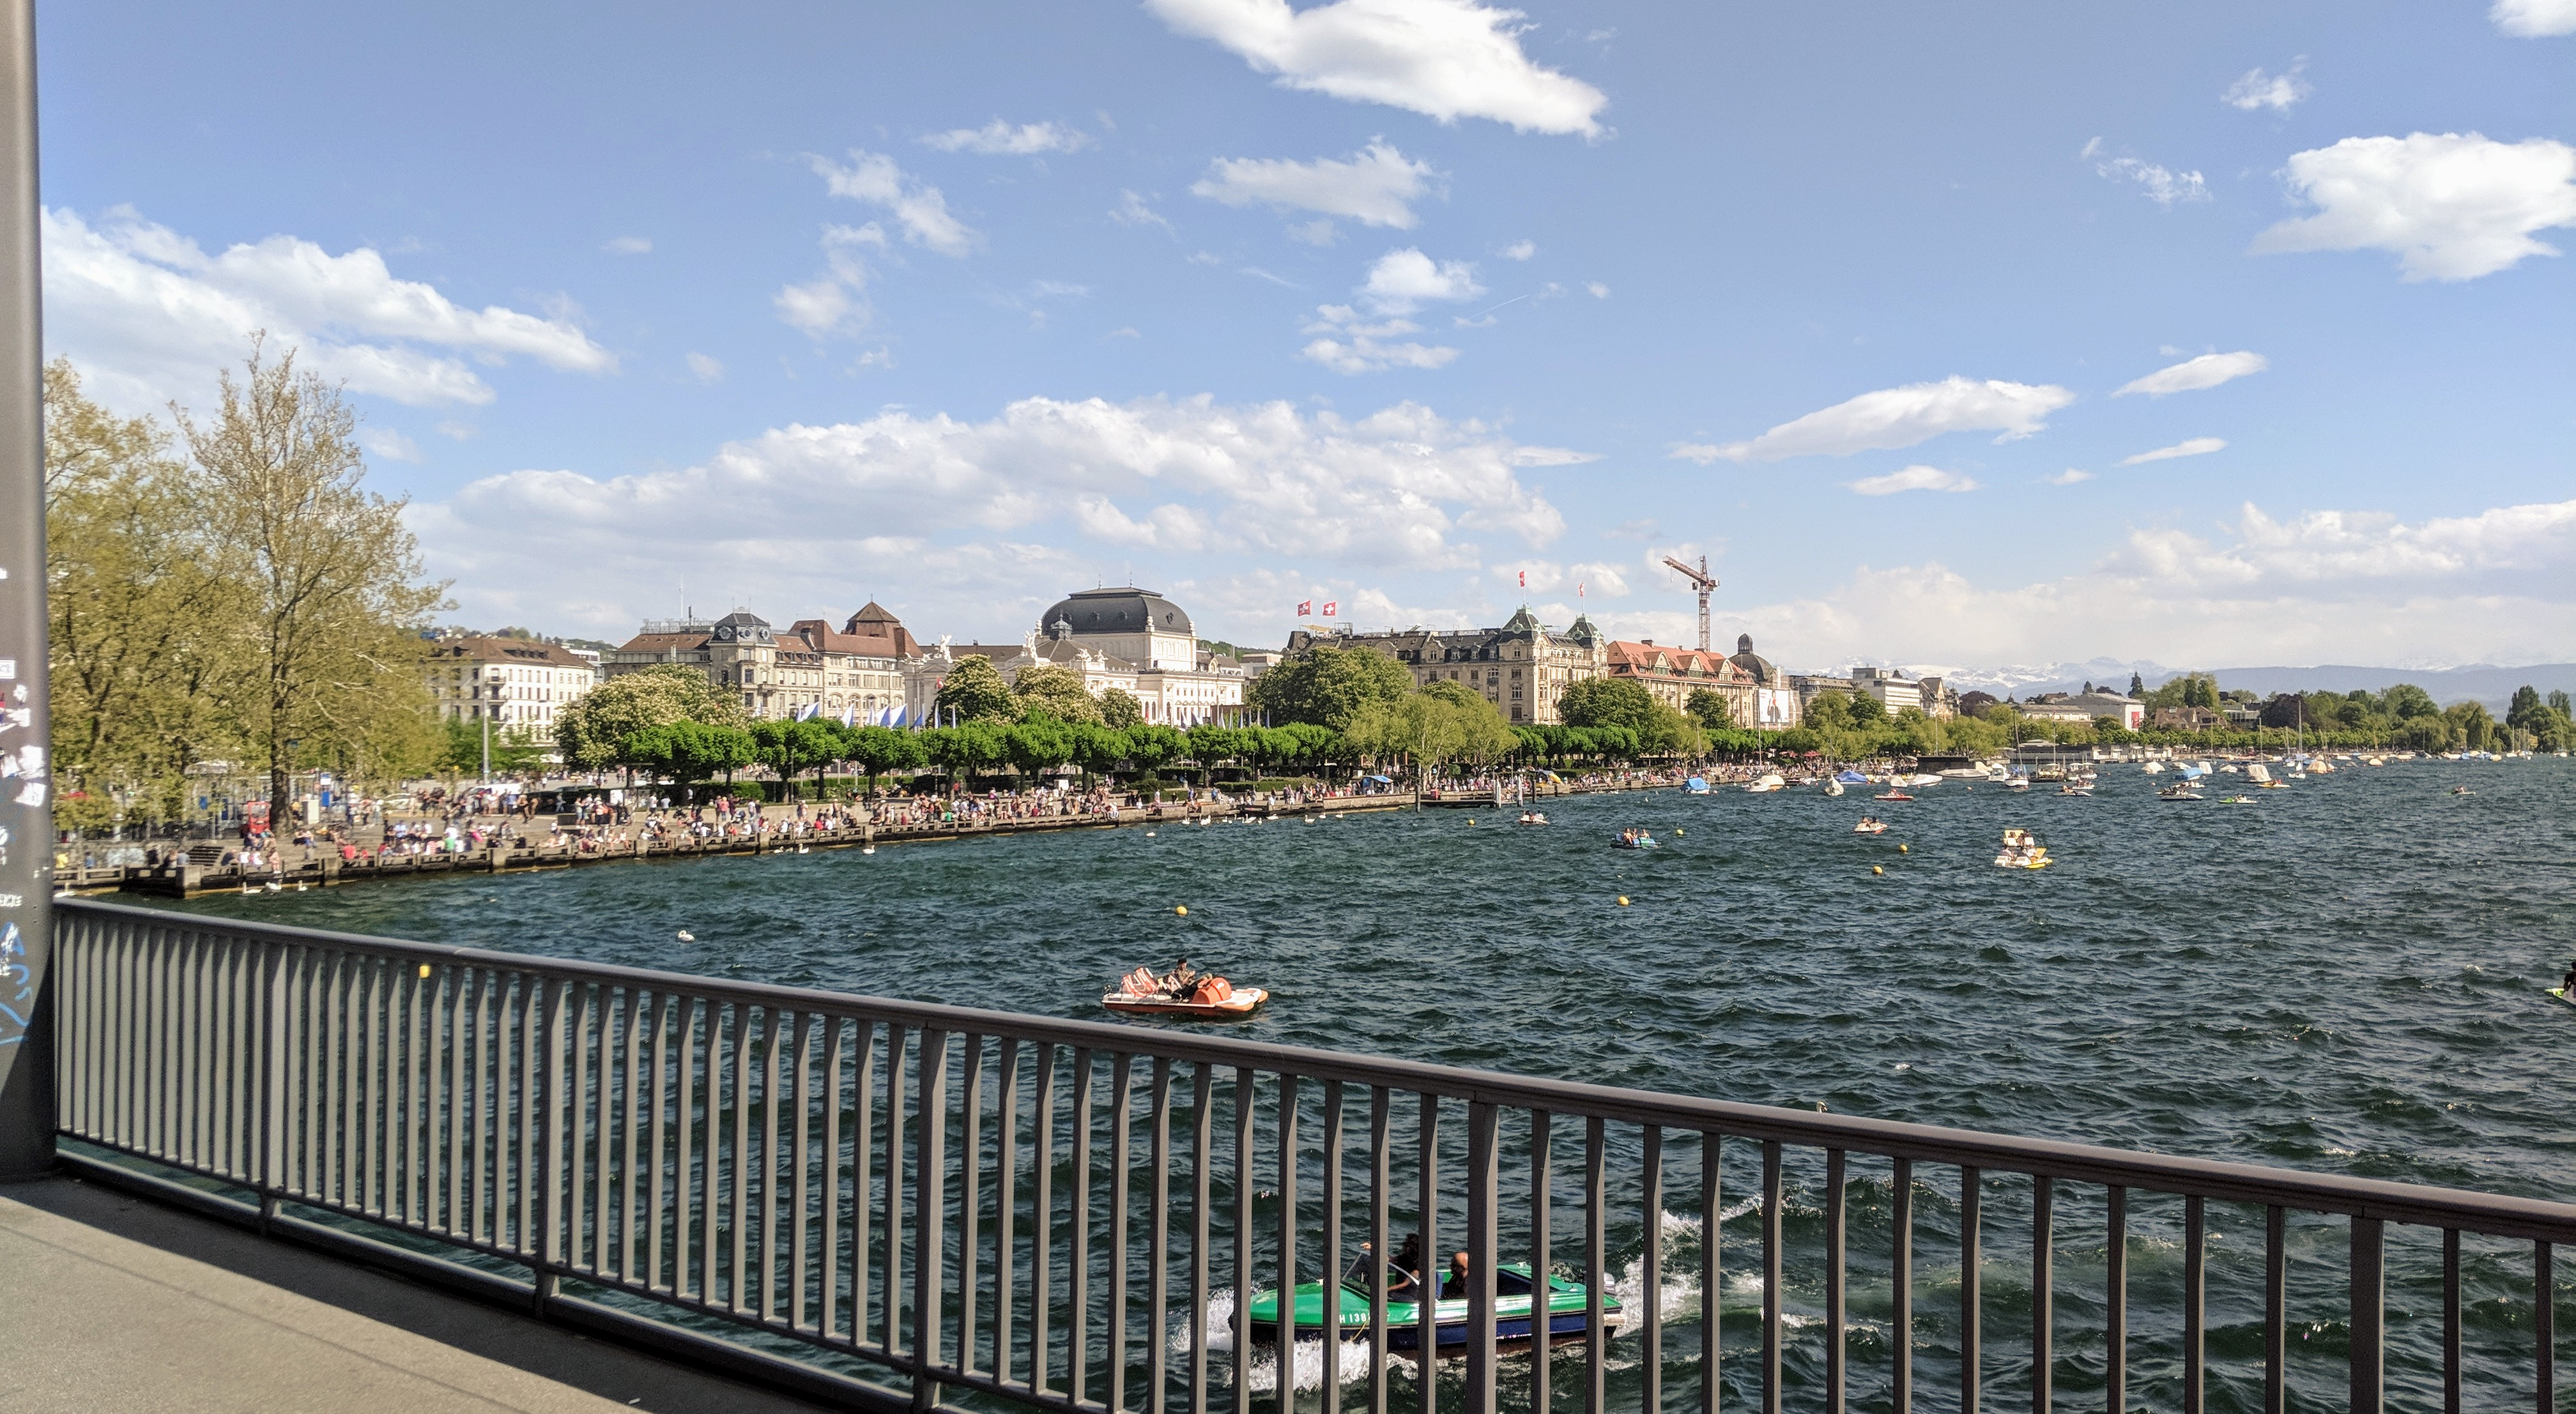 Running route in Zurich - View To OperaHouse